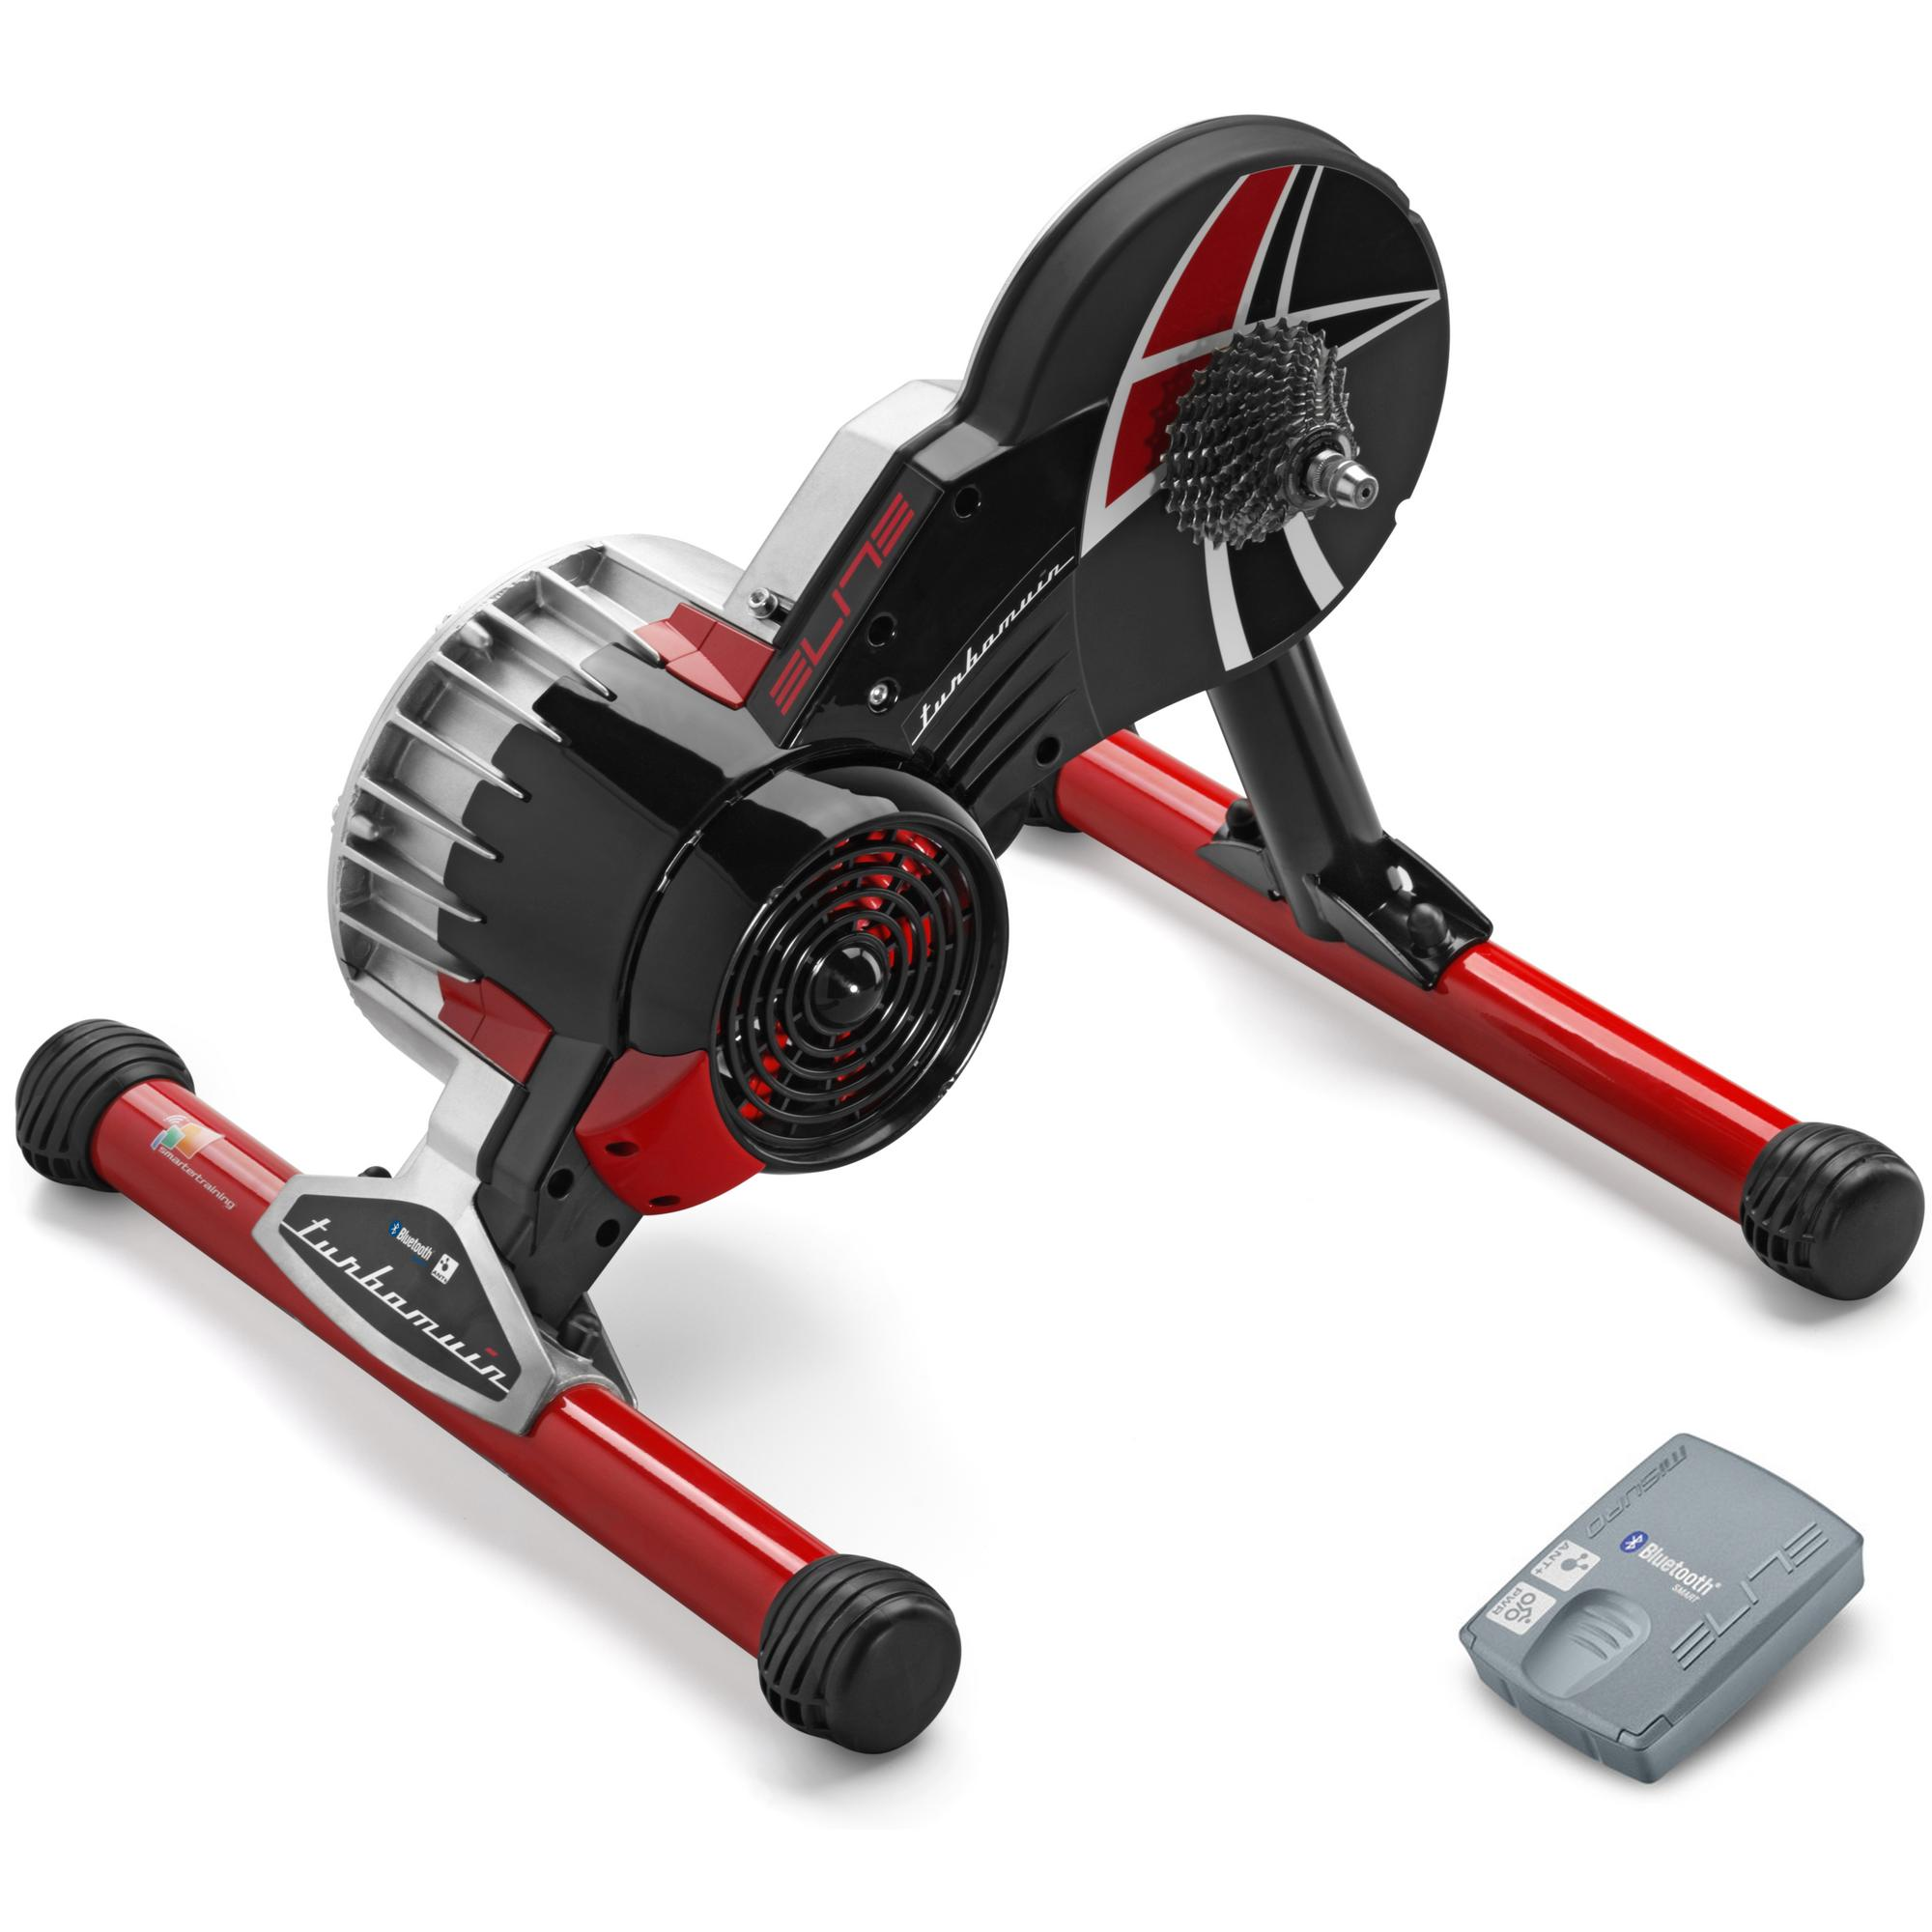 Smart Turbo Trainers For £300 Ish